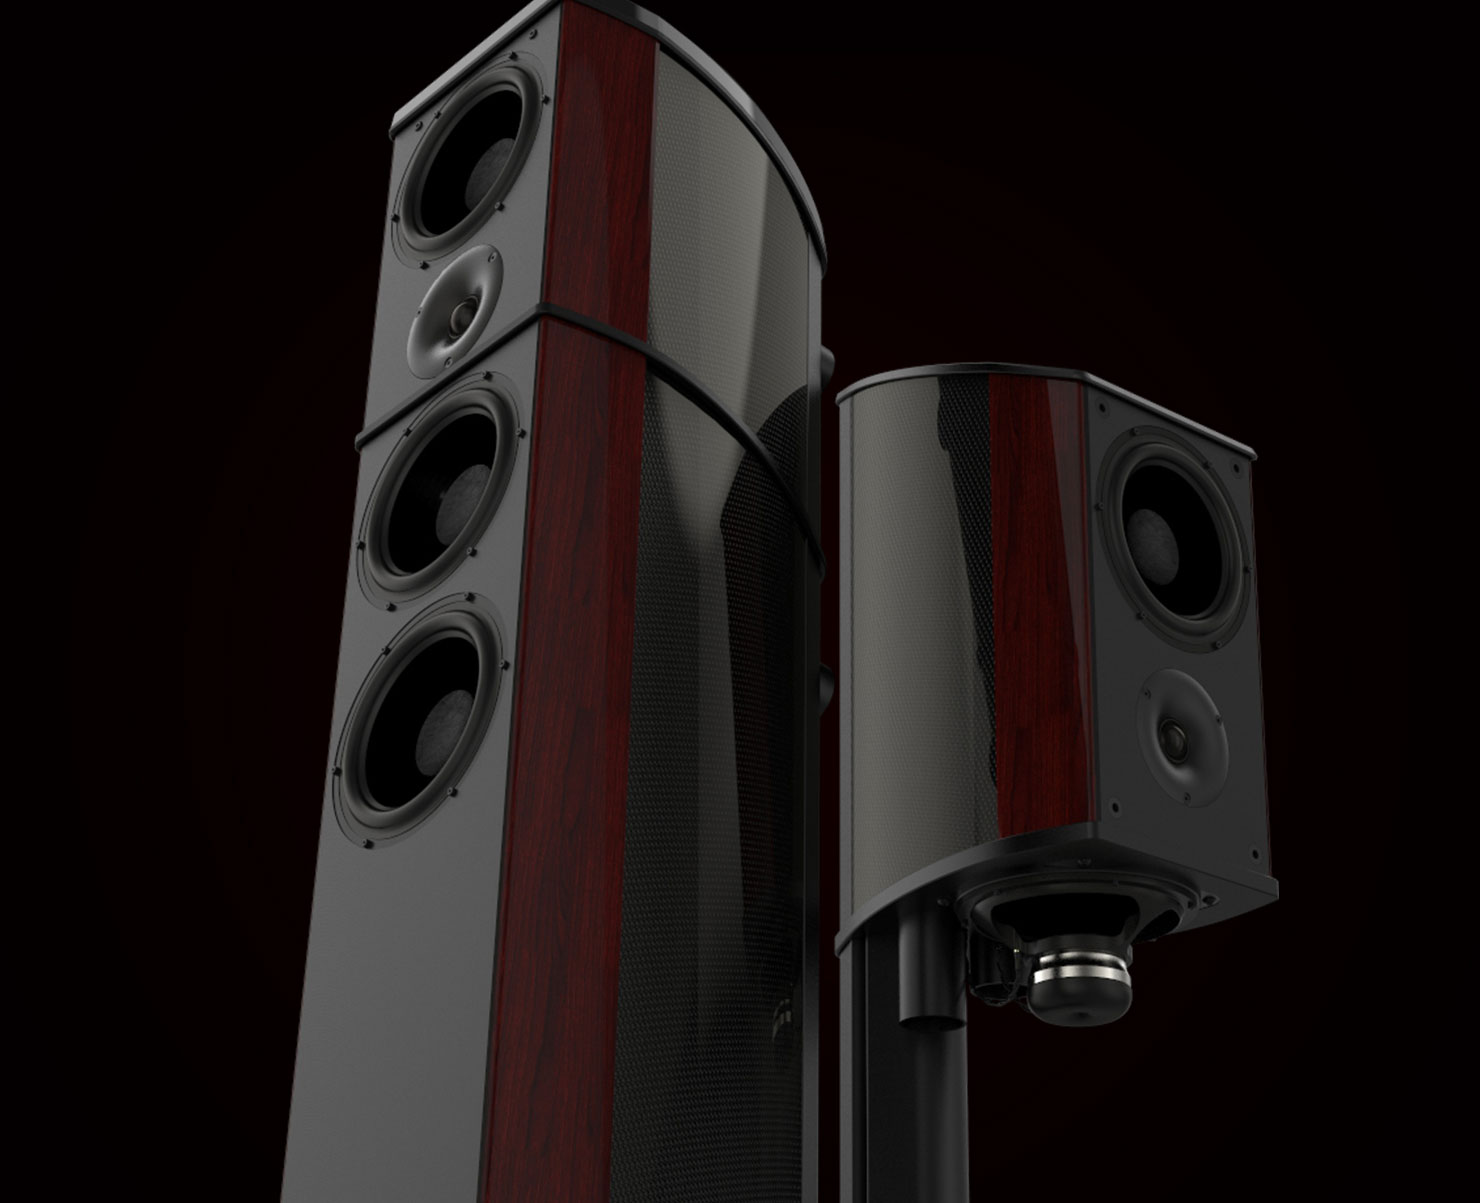 Wilson Benesch announces new U.S. Distributor